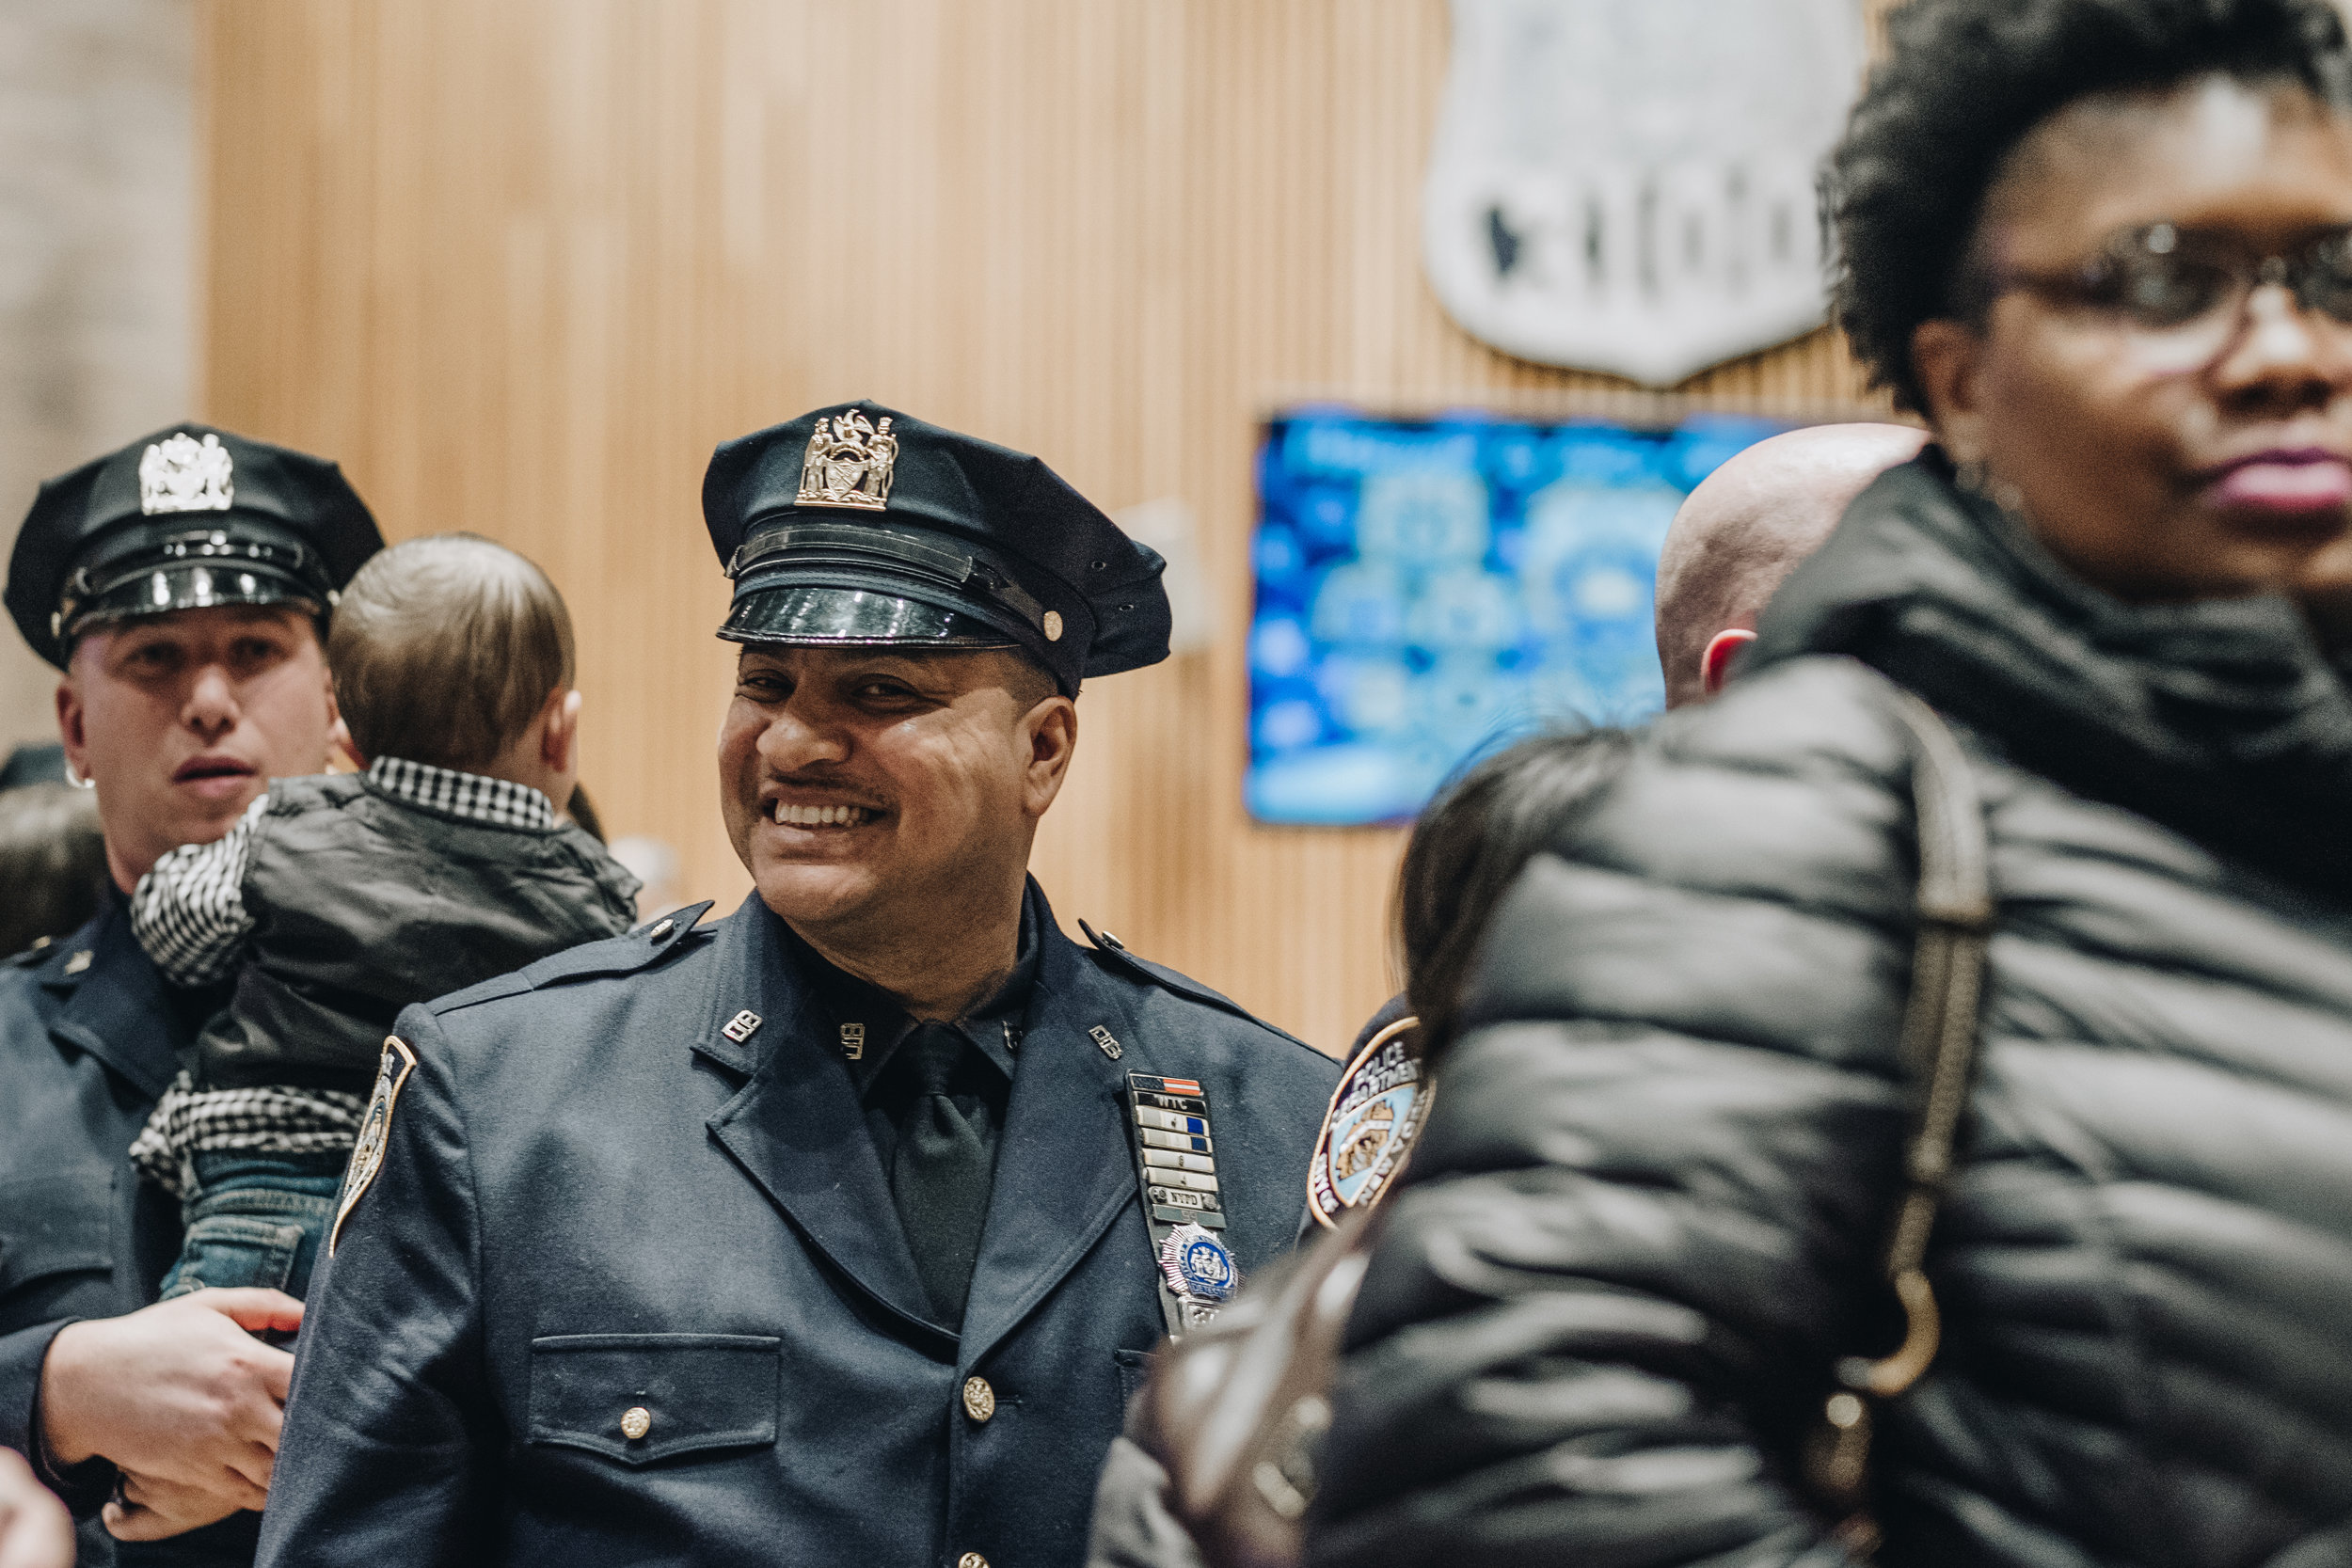 NYPD_Promotions-46.jpg